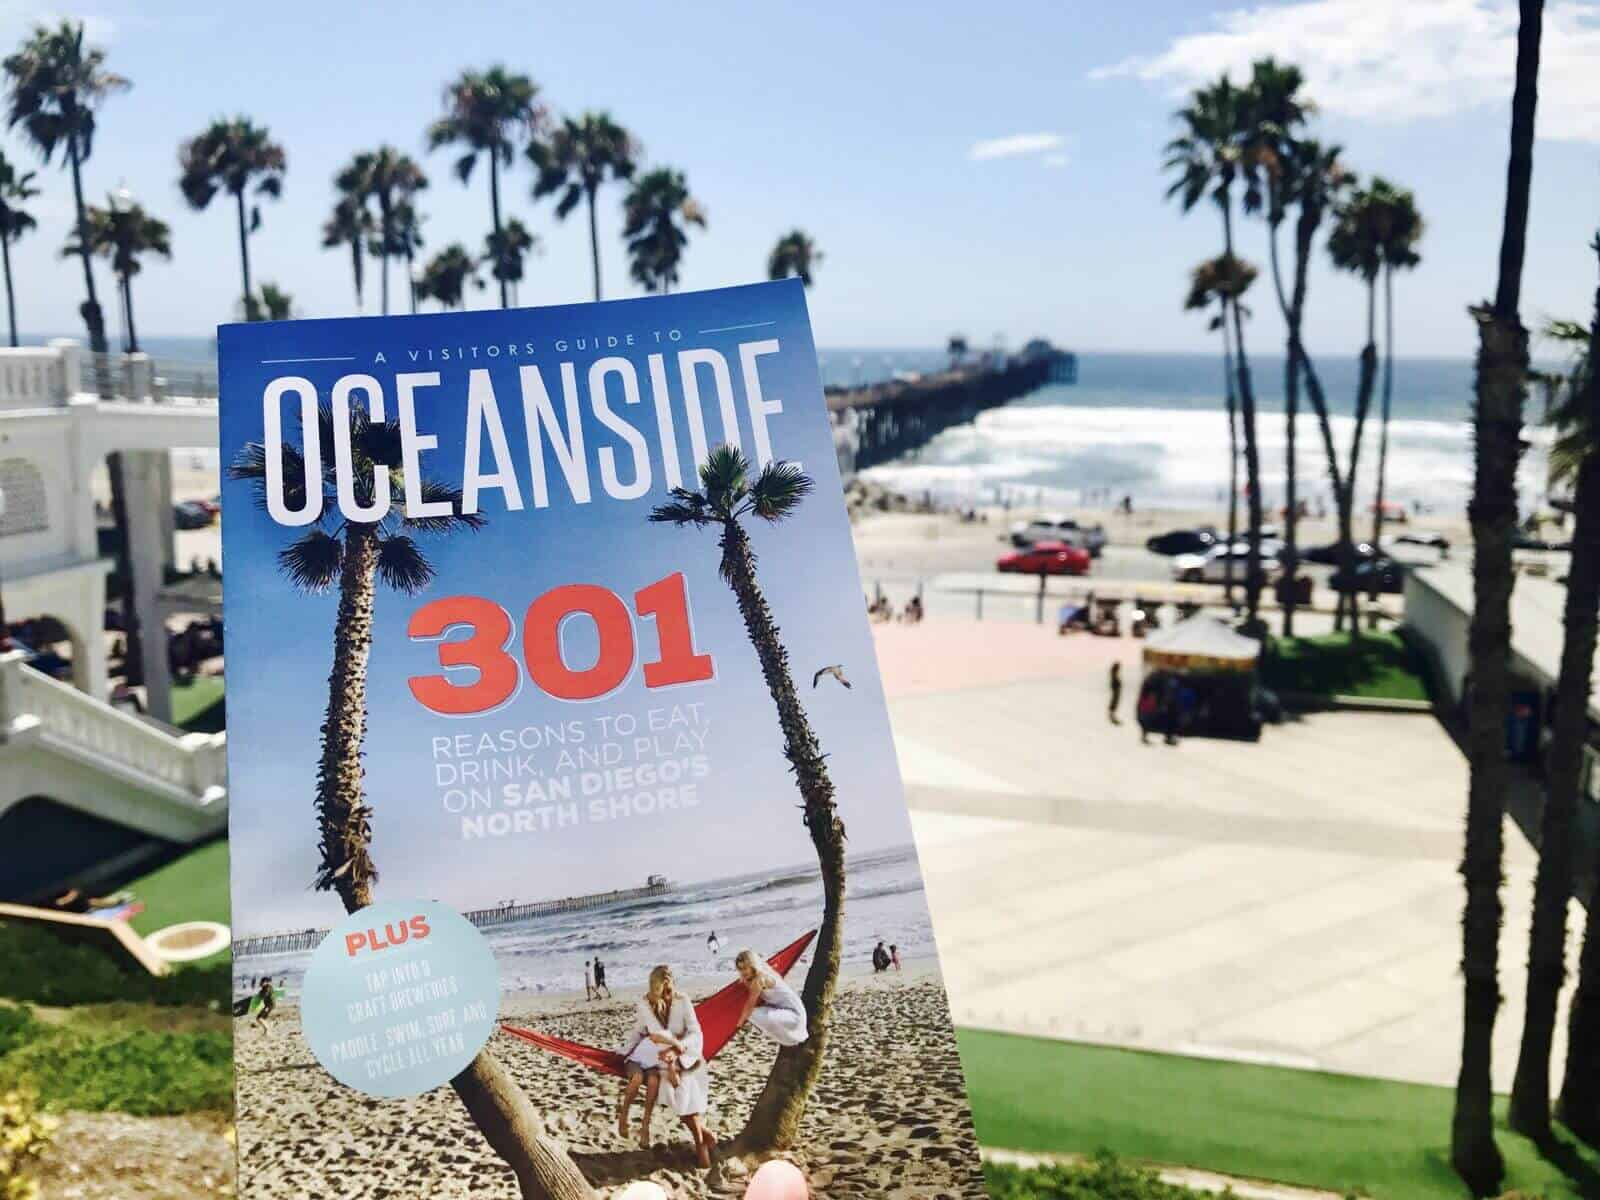 2017 Oceanside Visitor Guide at the Beach